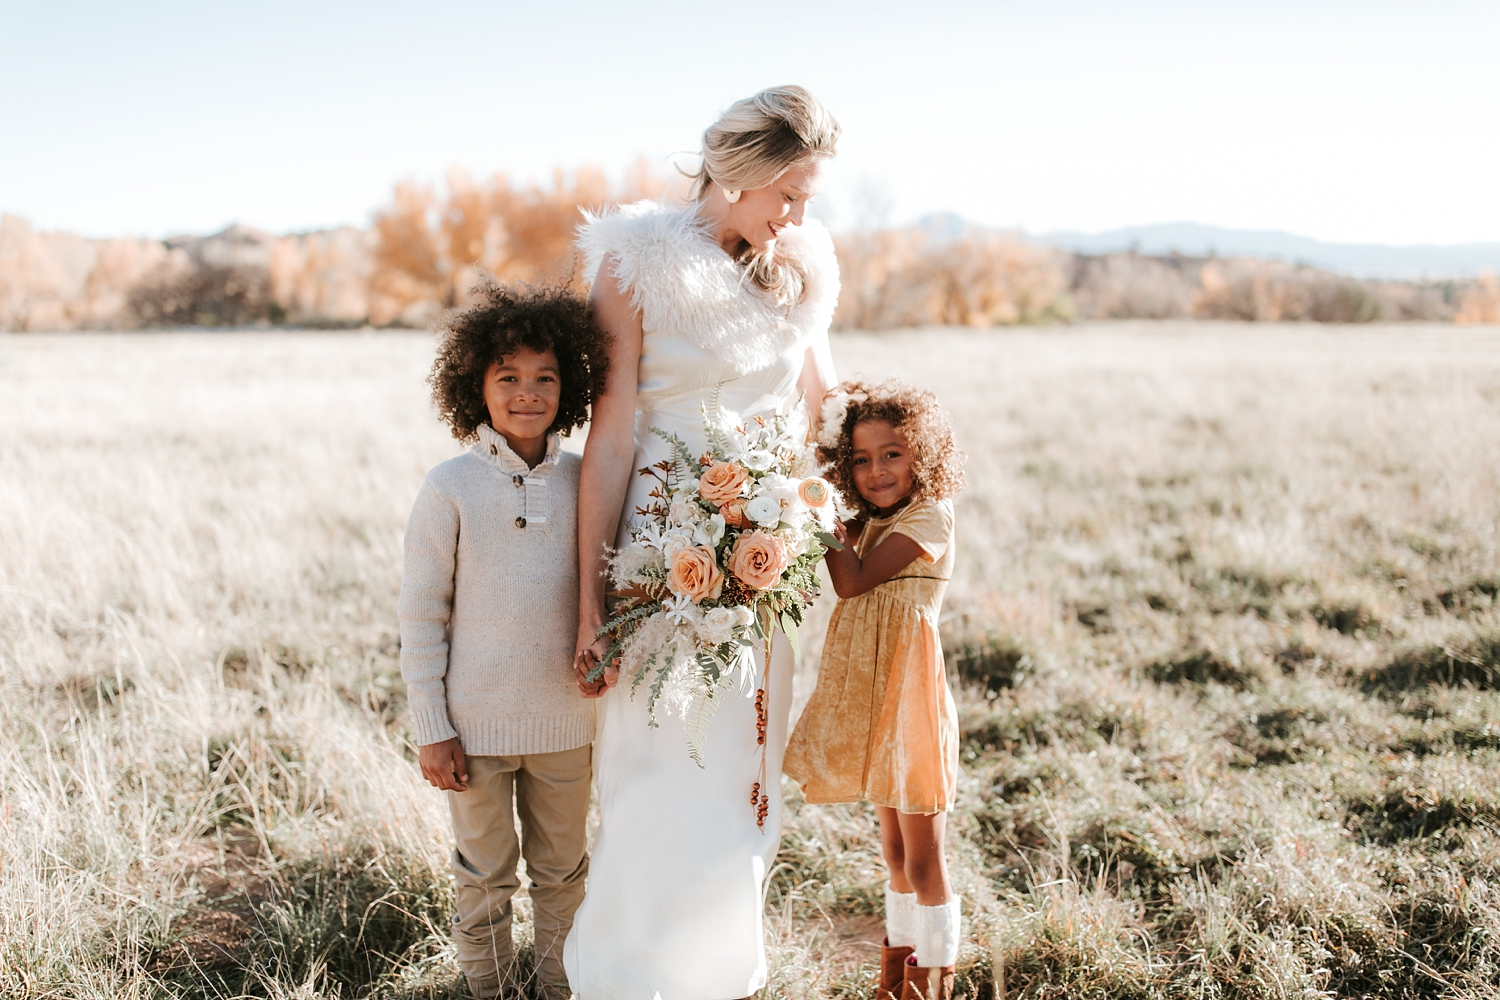 Alicia+lucia+photography+-+albuquerque+wedding+photographer+-+santa+fe+wedding+photography+-+new+mexico+wedding+photographer+-+new+mexico+ghost+ranch+wedding+-+styled+wedding+shoot_0026.jpg